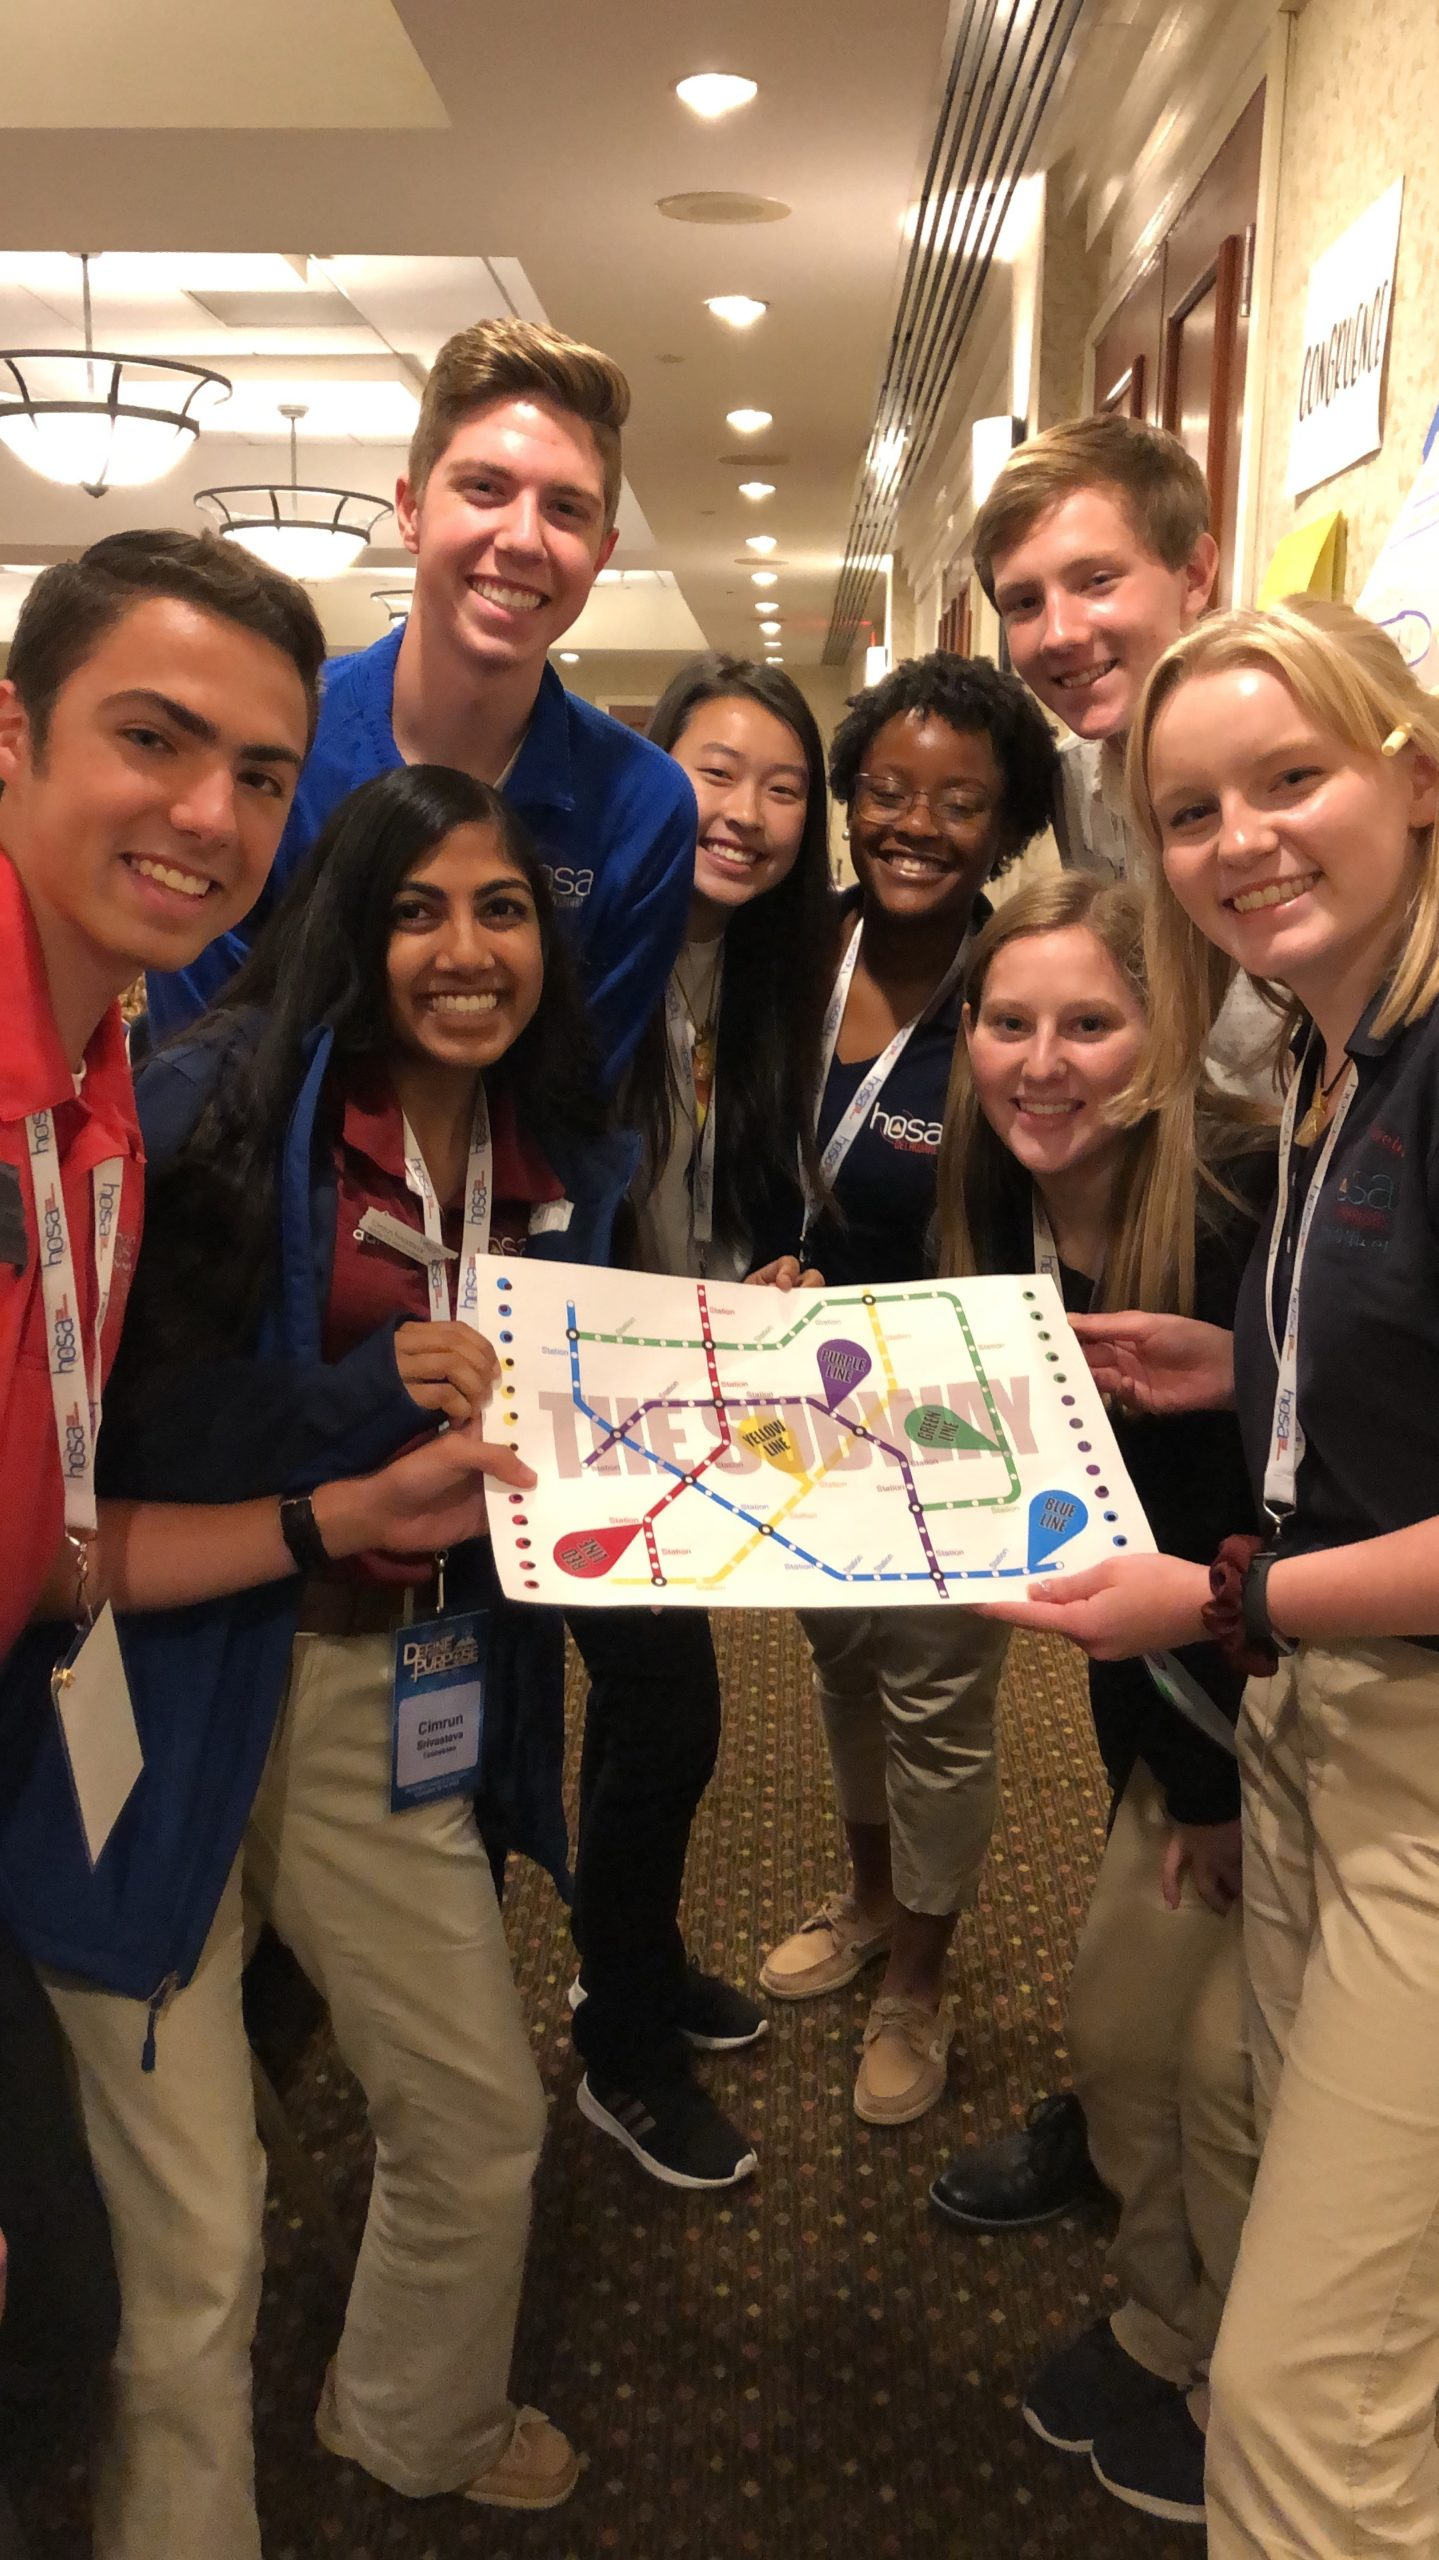 HOSA Blog: Member Engagement & HOSA's Service Project